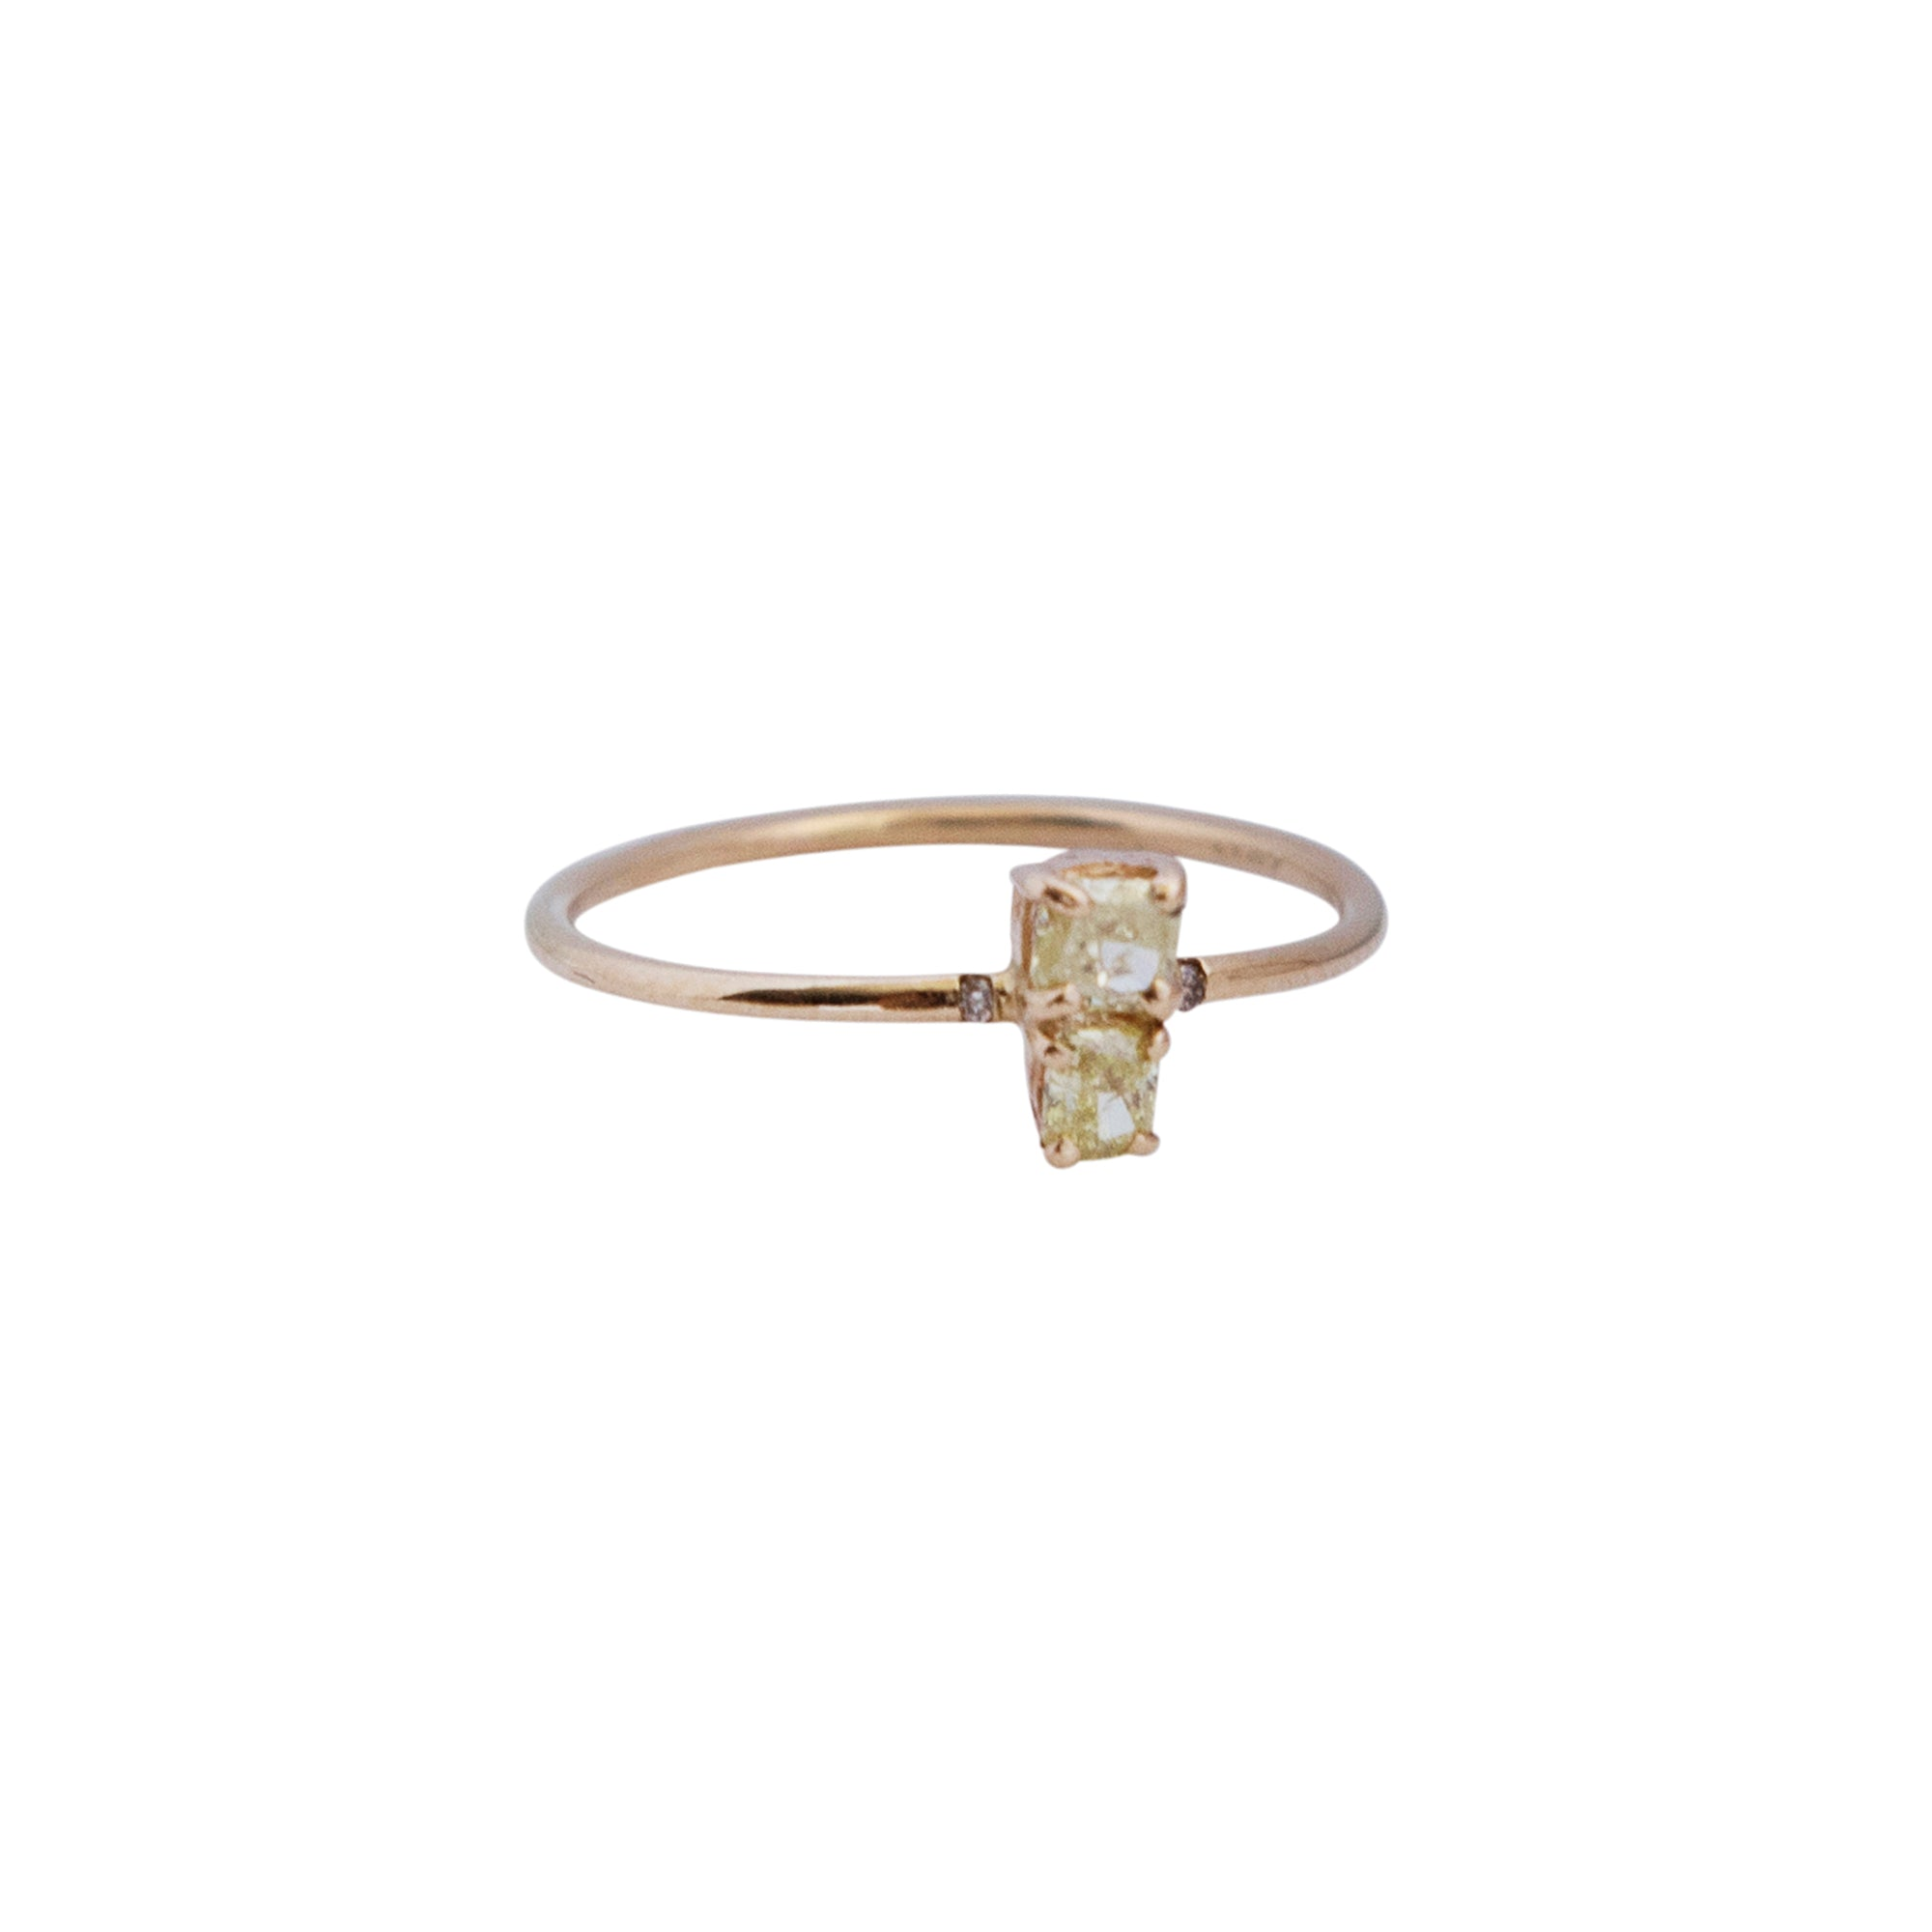 Gold Diamond Stardust Stacking Ring by Xiao Wang for Broken English Jewelry